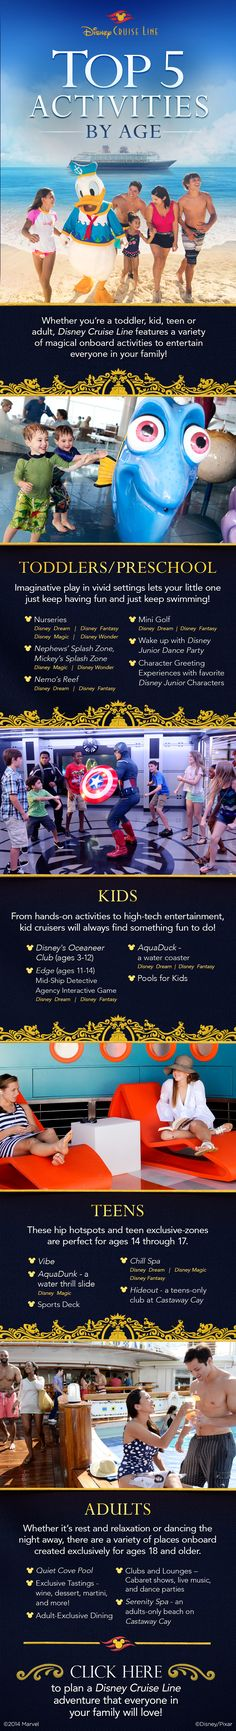 Check out these top 5 activities by age on a Disney Cruise vacation! #disneycruise